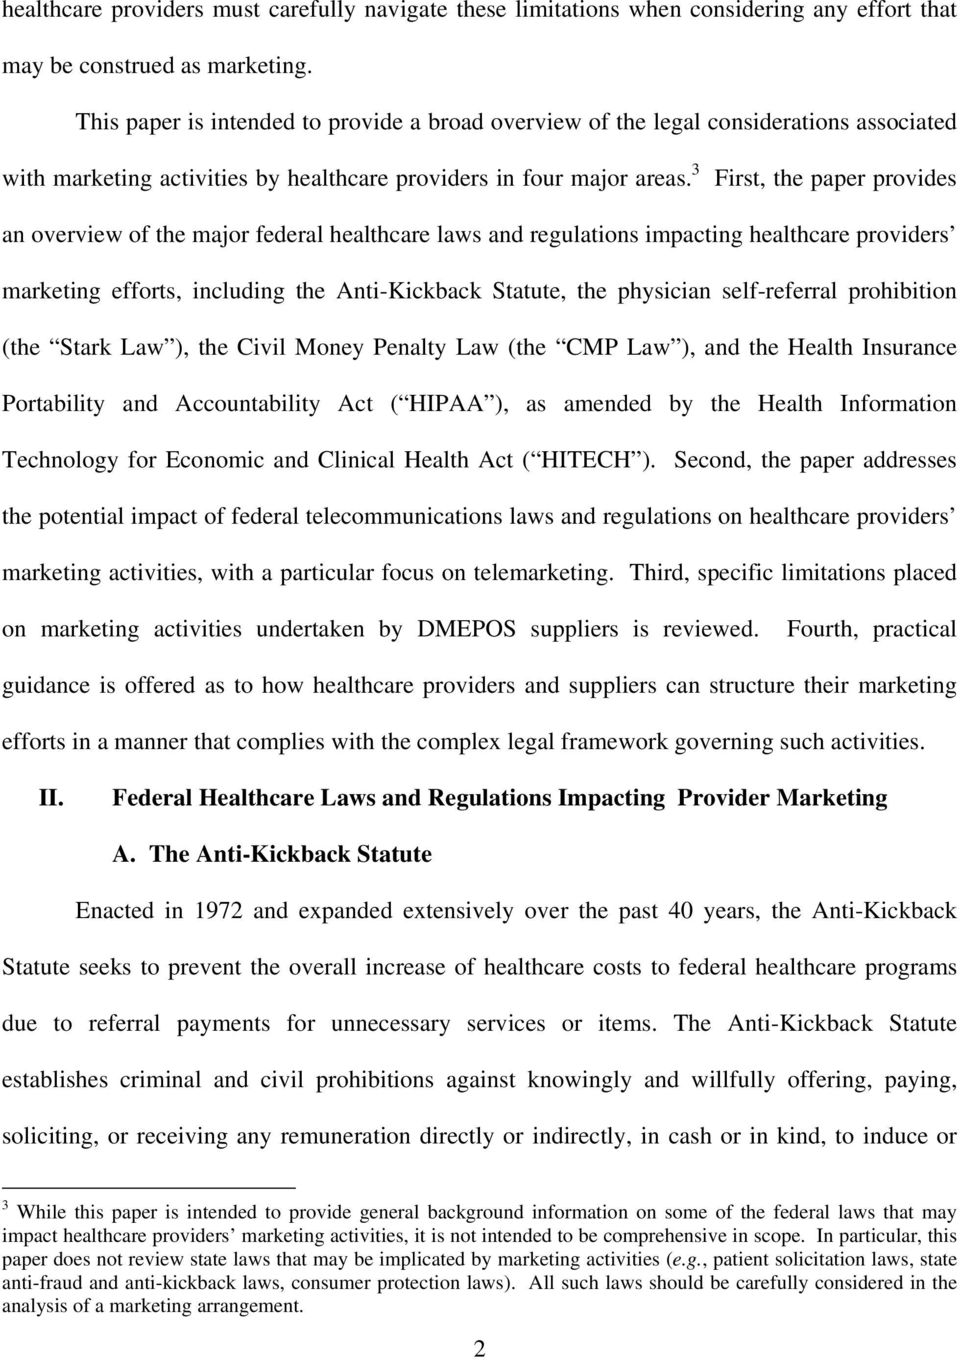 3 First, the paper provides an overview of the major federal healthcare laws and regulations impacting healthcare providers marketing efforts, including the Anti-Kickback Statute, the physician